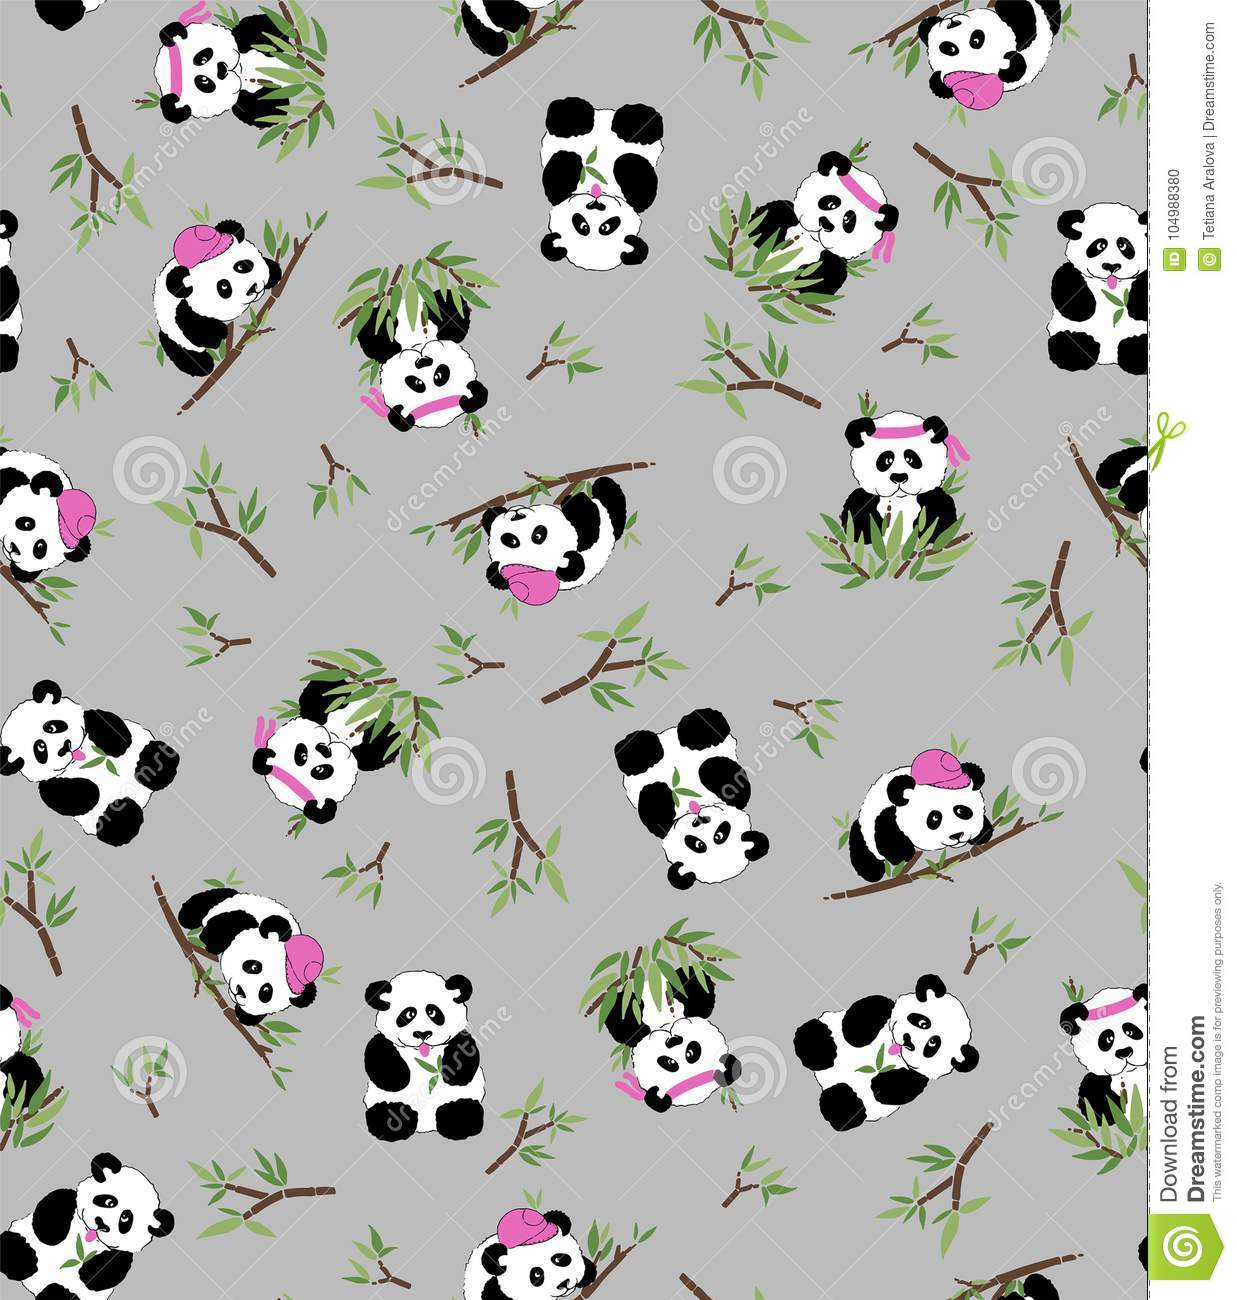 Panda and bamboo, grey background. Seamless pattern - Textil, postcards wallpaper